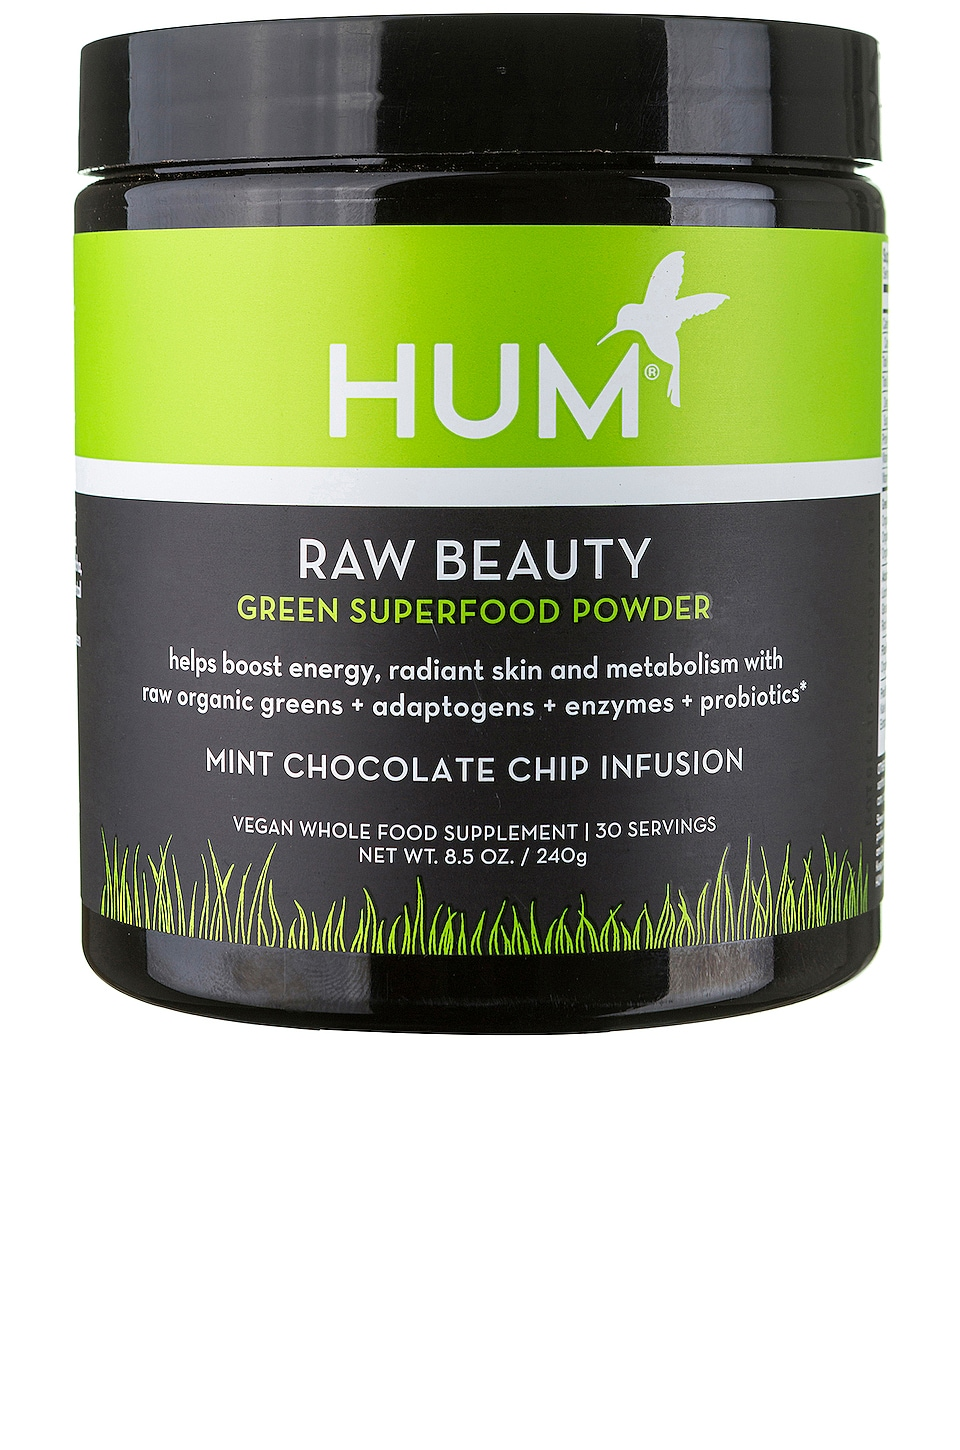 Mint Chocolate Beauty Supplement